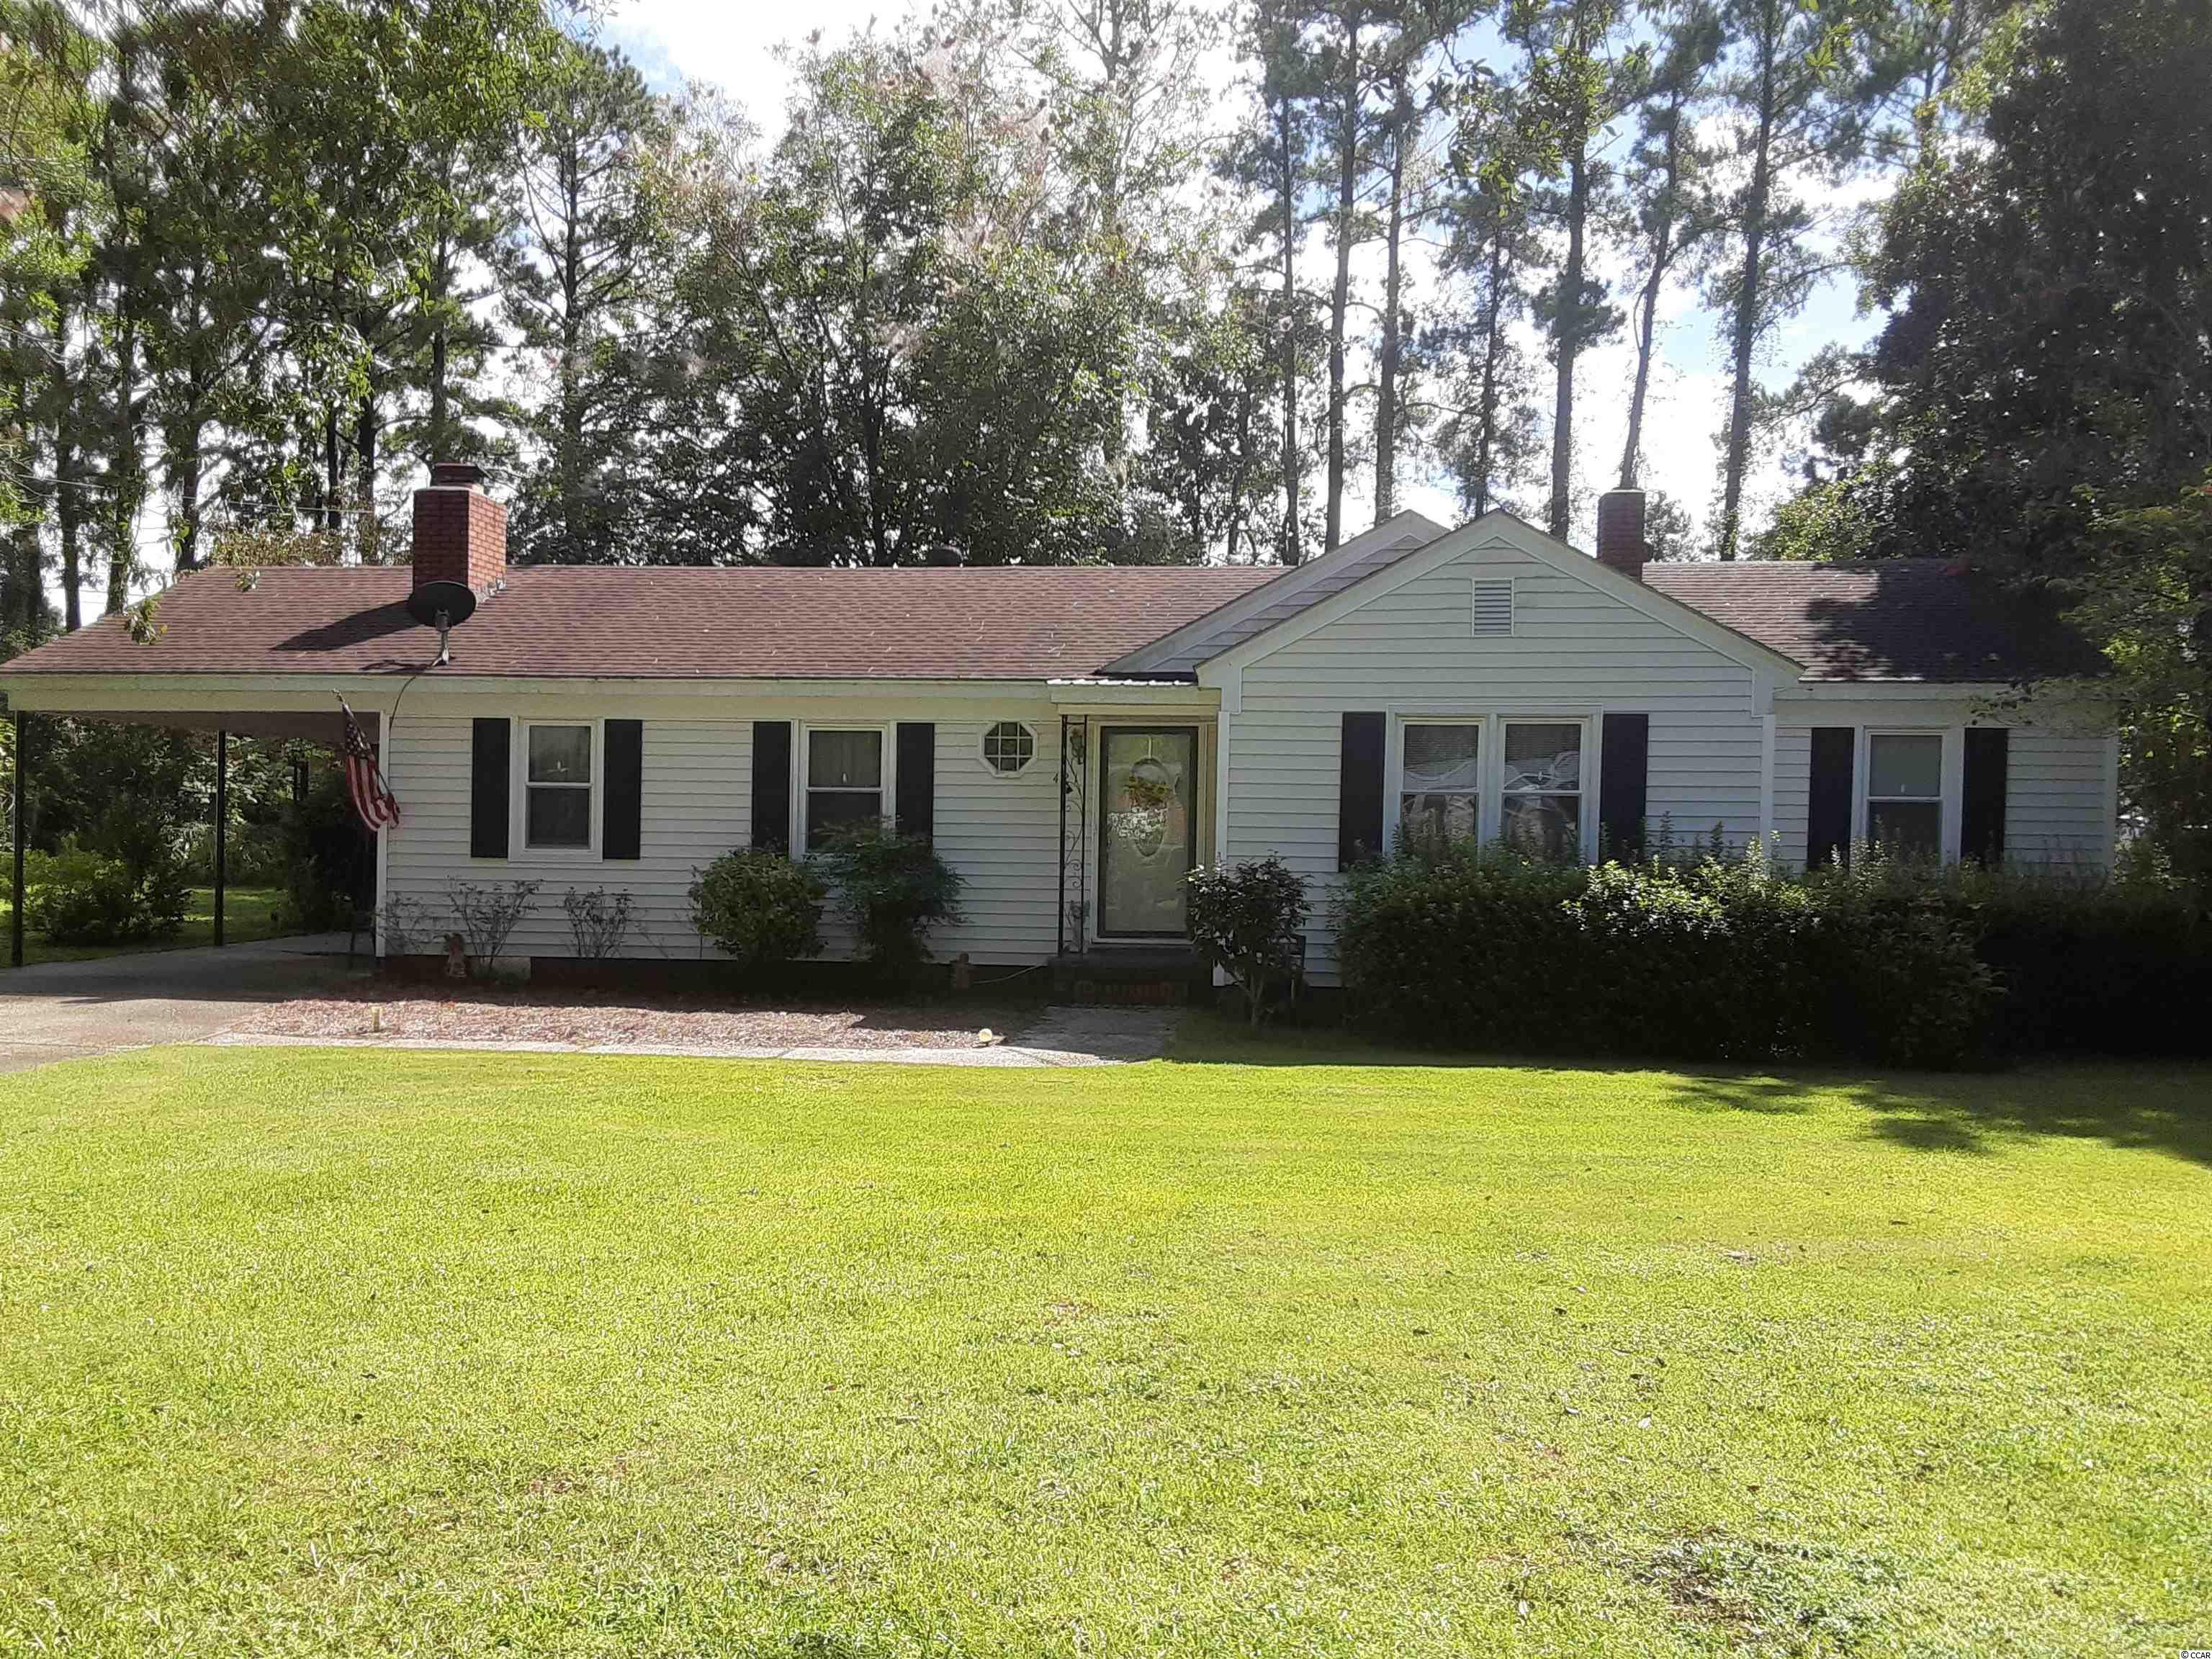 3 bedroom / 2 bath ranch located in the Maryville area of Georgetown. 5 minutes to Historic District waterfront shopping and dining. 30 minutes from Myrtle Beach and 60 minutes from Charleston. Located near Maryville school. Has two 10x16 outbuildings. A/C and duct work is 6 months old. Has new front door and has vinyl windows. Range and dishwasher are 2 years old. Square footage is approximate and not guaranteed. The buyer is responsible for verification.